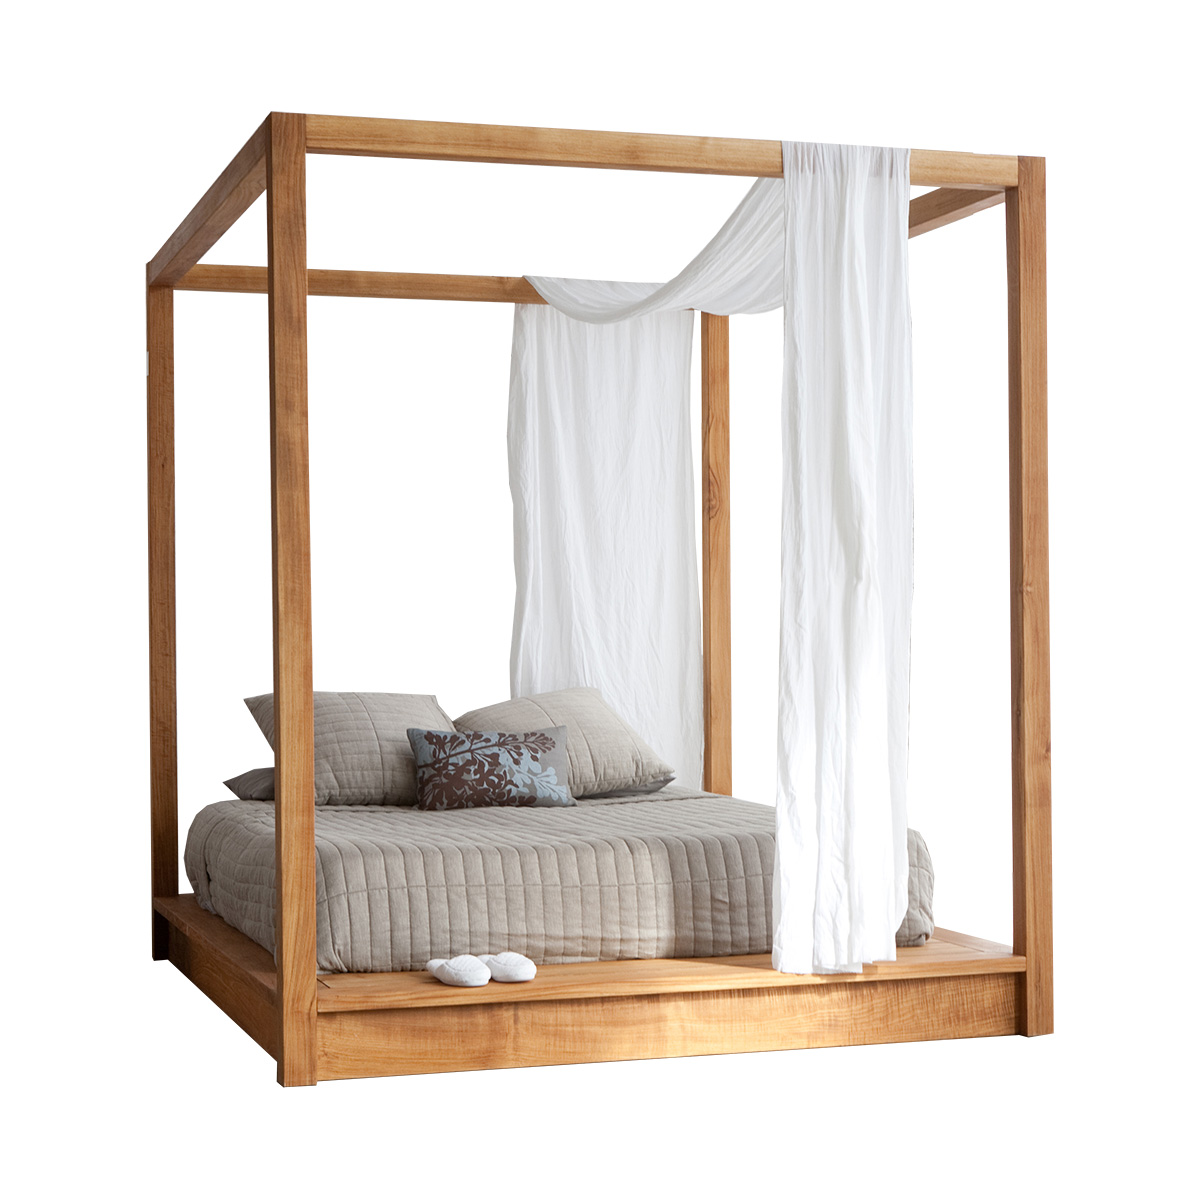 Pch series canopy platform bed for Beds 4 sale